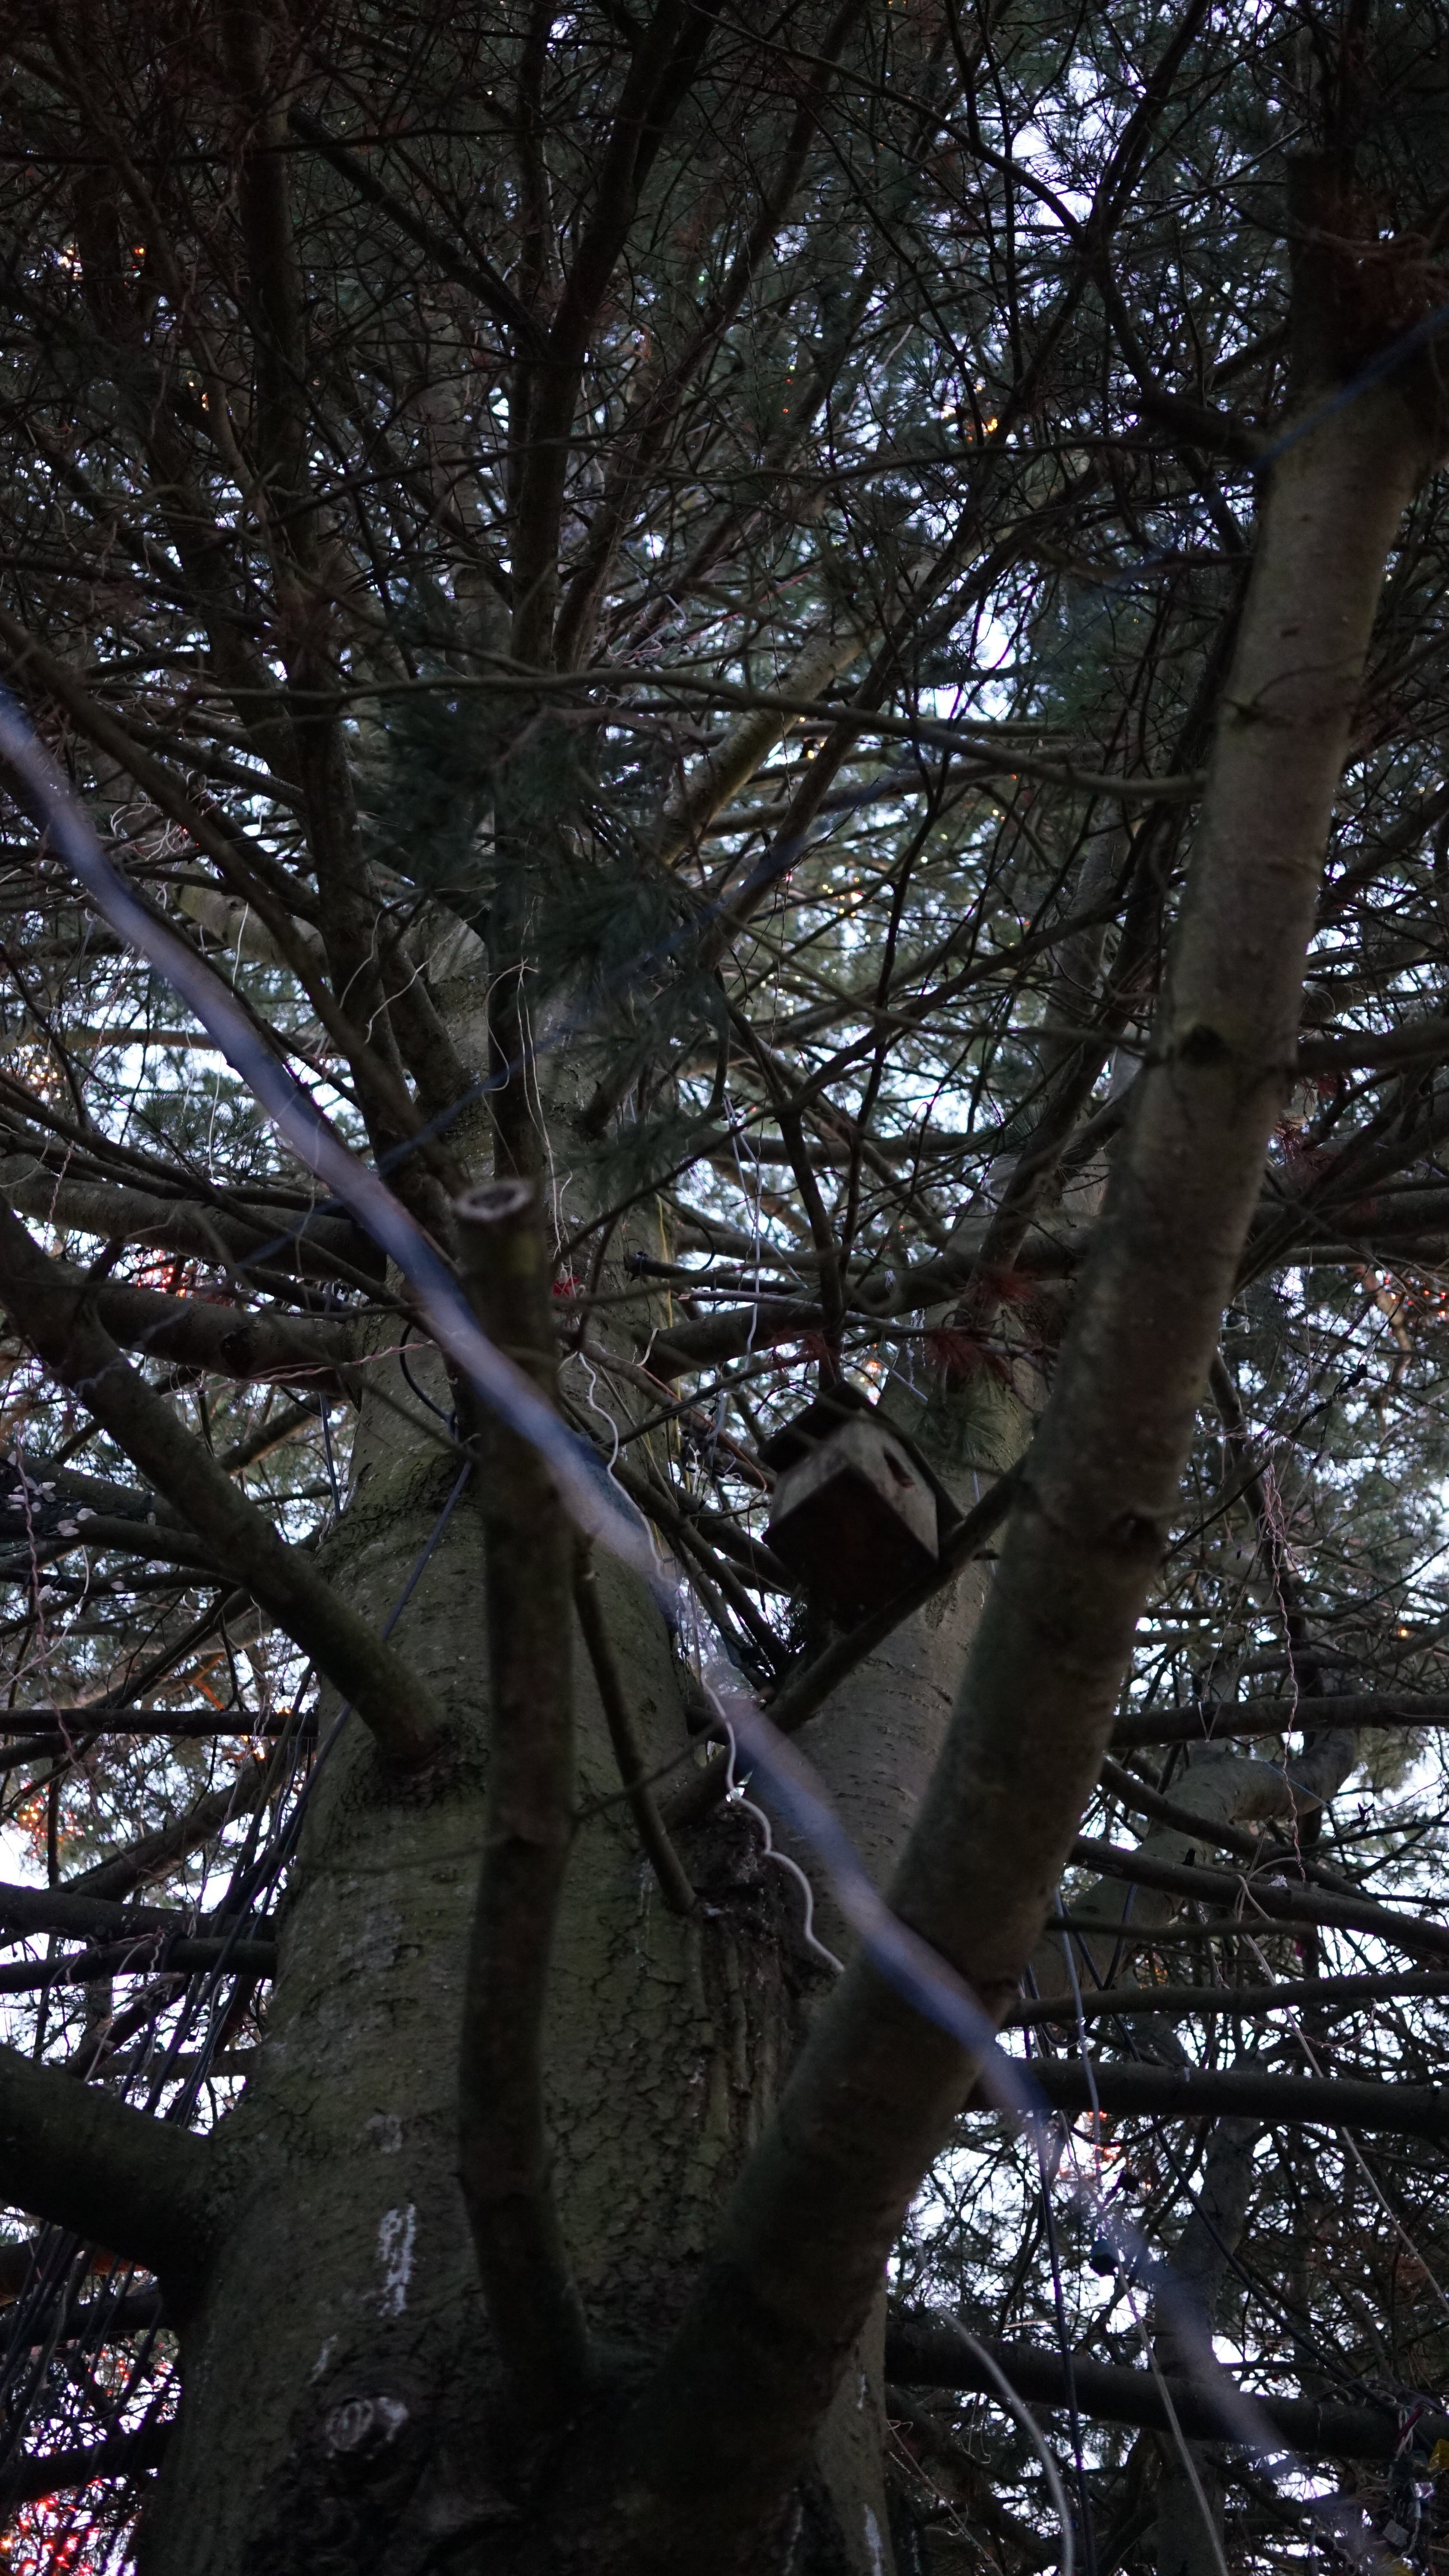 The tangle of tree limbs that is the Everett Christmas tree. Can you spot Danny?